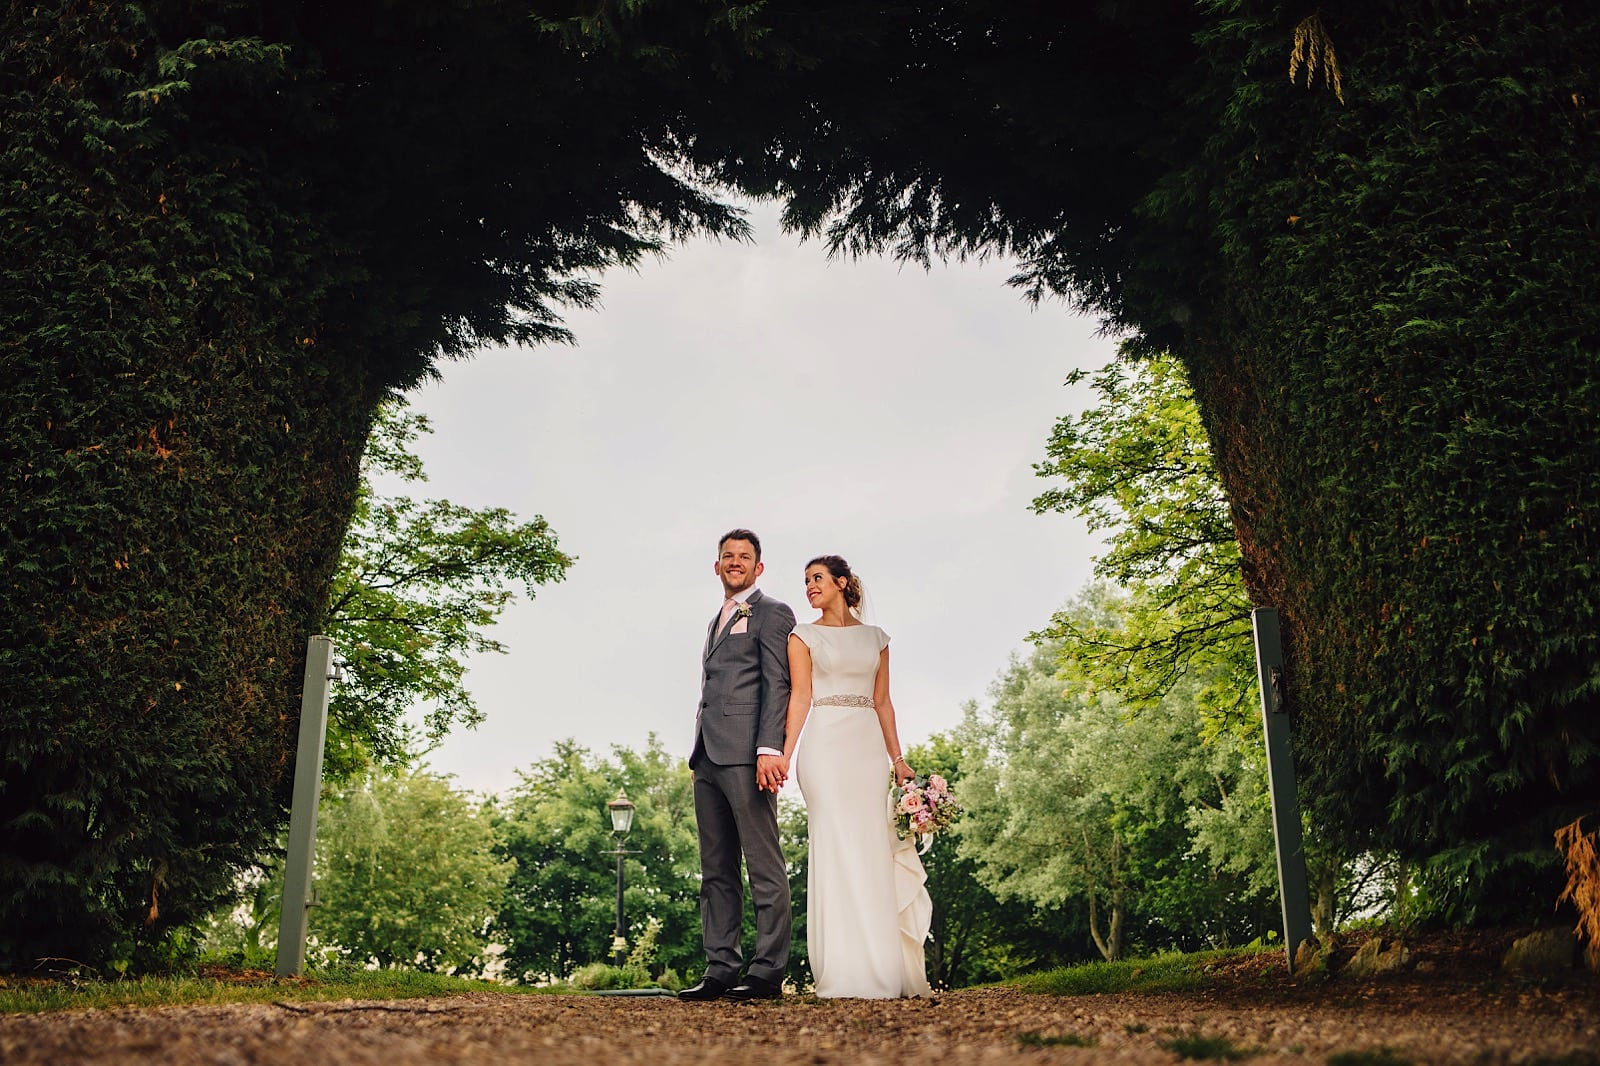 Dovecote barn adderbury wedding photography 064